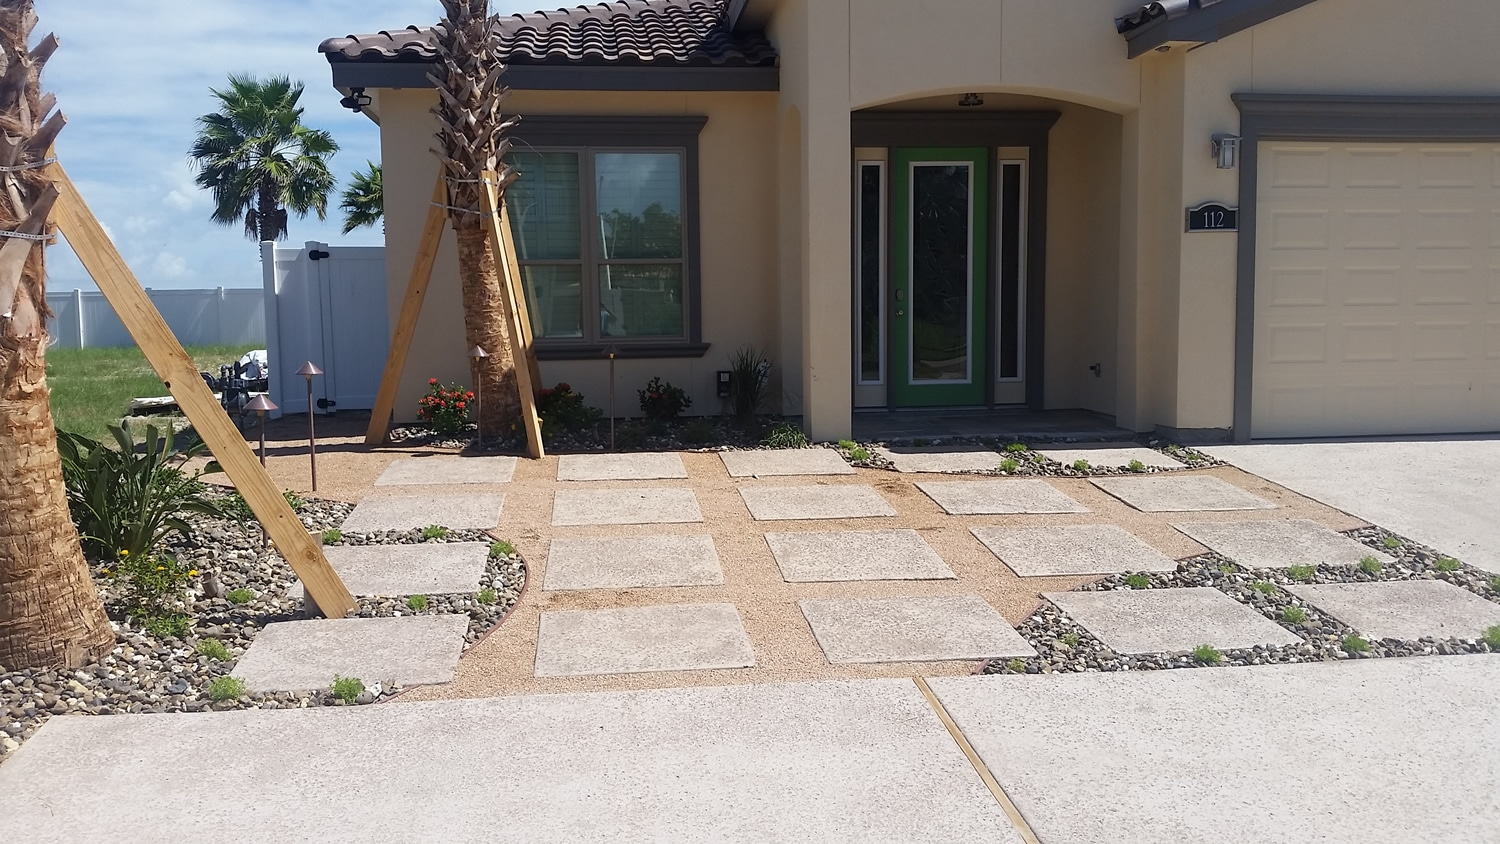 Landscaping hardscapes on residential home